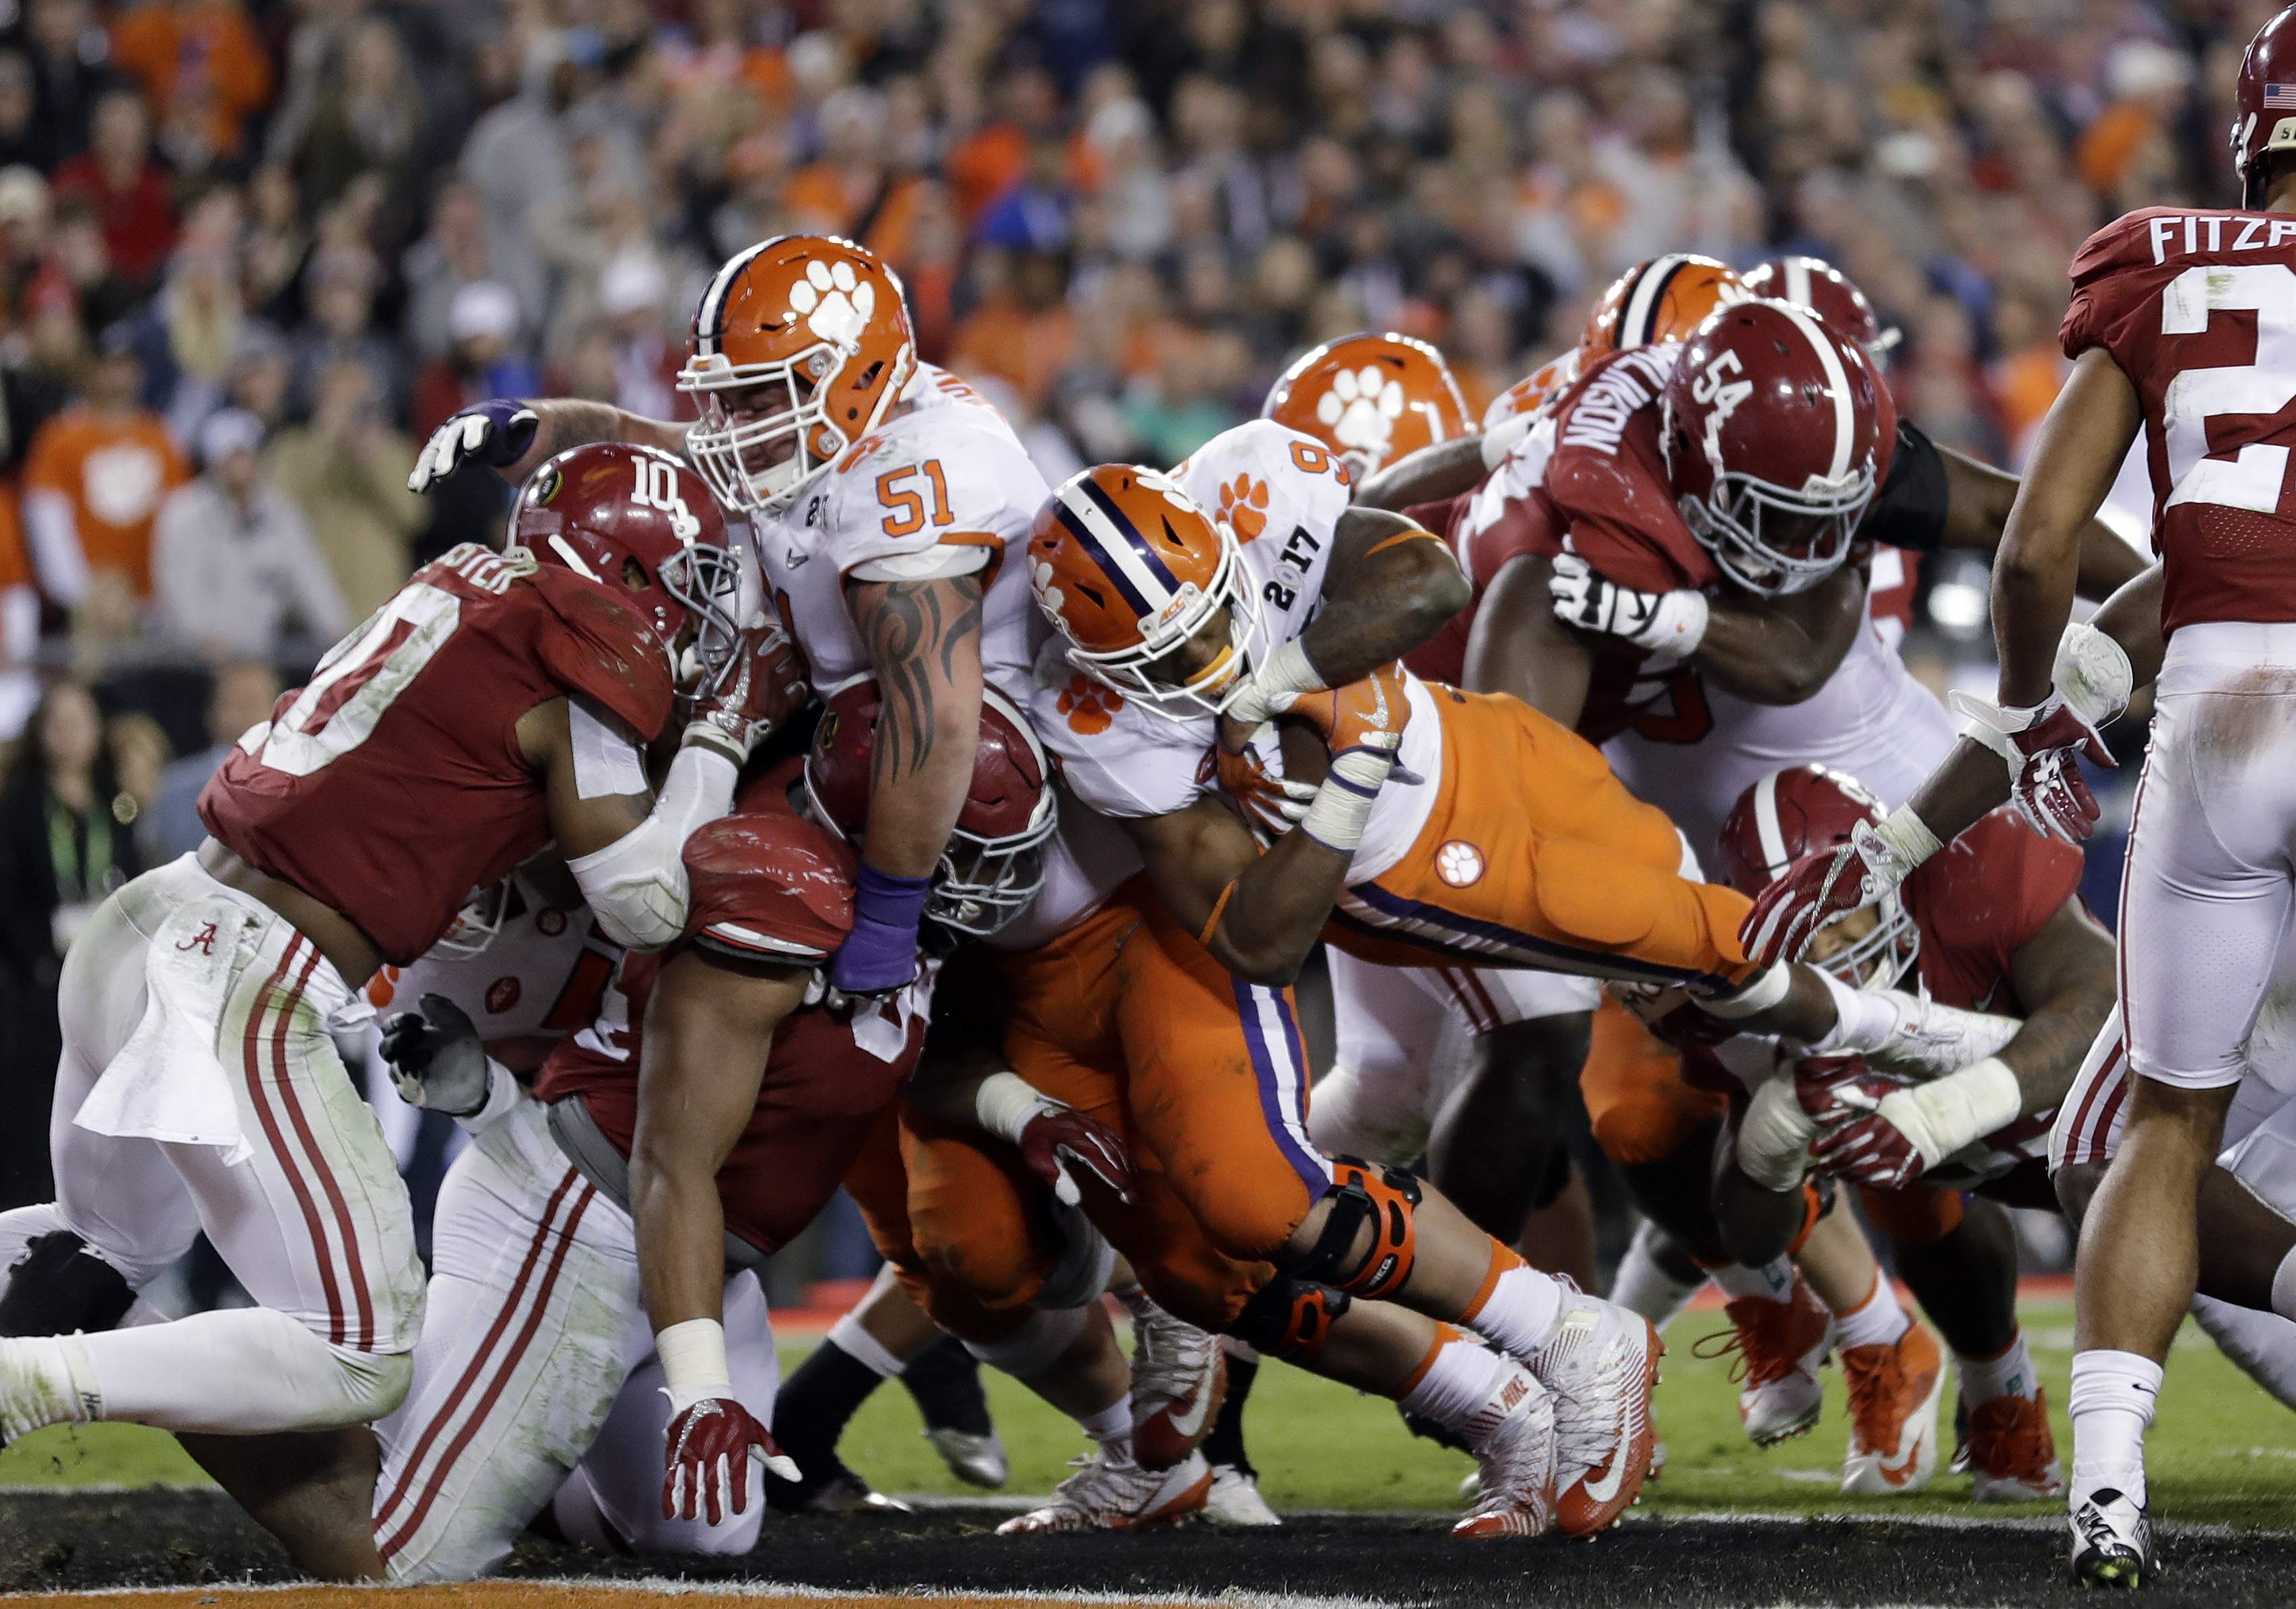 Clemson's Wayne Gallman (9) dives into the end zone for a touchdown turn during the second half of the NCAA college football playoff championship game against Alabama early Tuesday, Jan. 10, 2017, in Tampa, Fla. THE ASSOCIATED PRESS